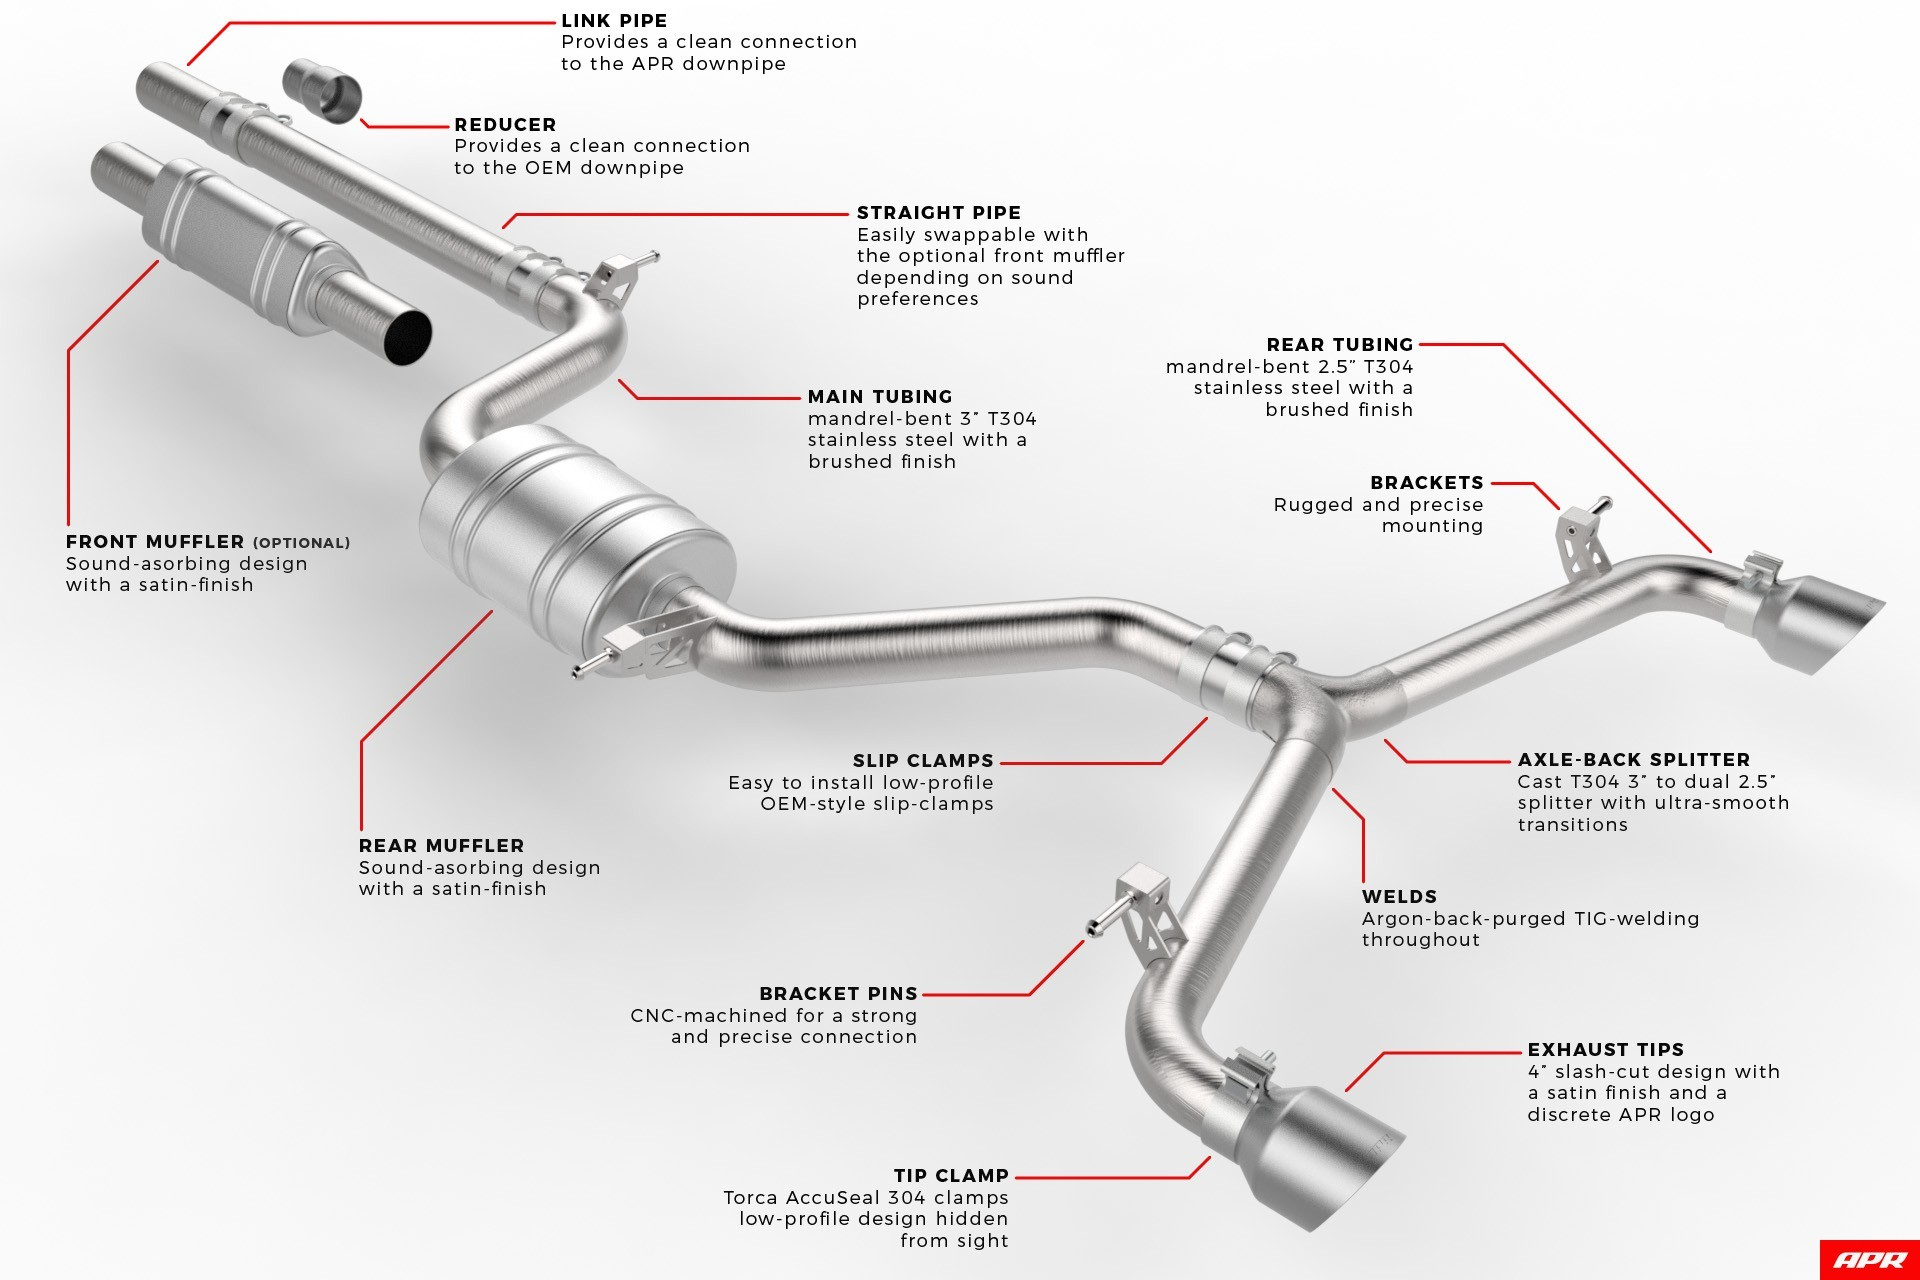 Car Exhaust Pipe Diagram Apr Mk7 Gti Turboback Exhaust System W Usp Downpipe Cbk0001 Usp Of Car Exhaust Pipe Diagram